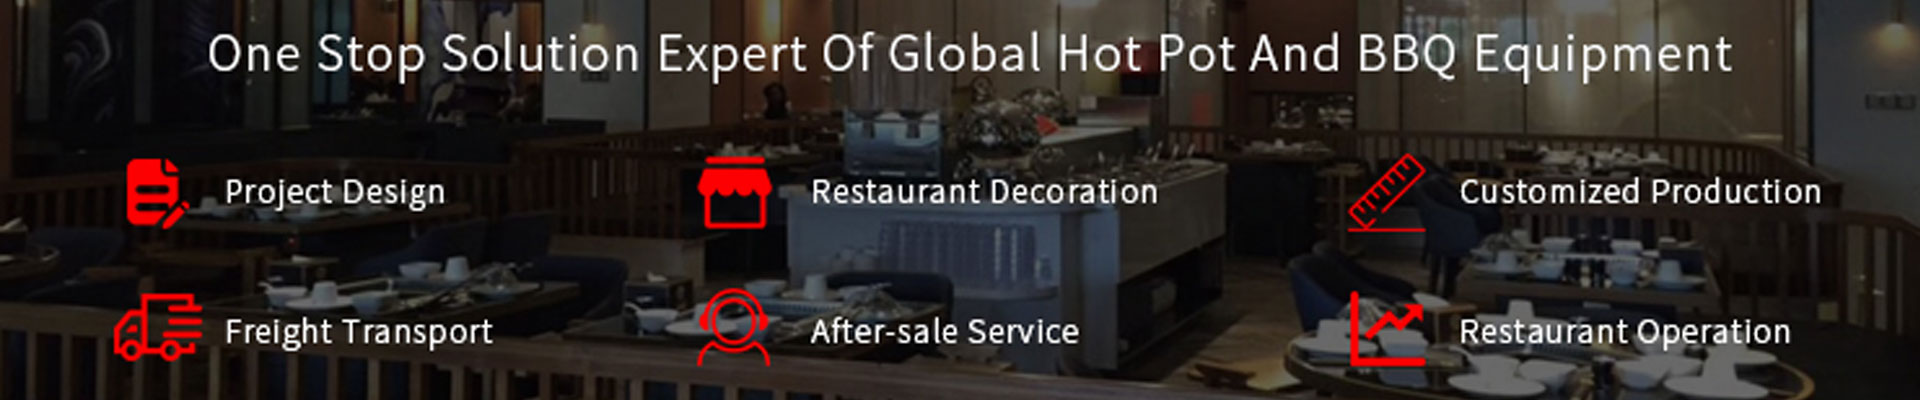 CENHOT BRAND ONE STOP SOLUTION EXPERT OF HOT POT & BBQ EQUIPMENT